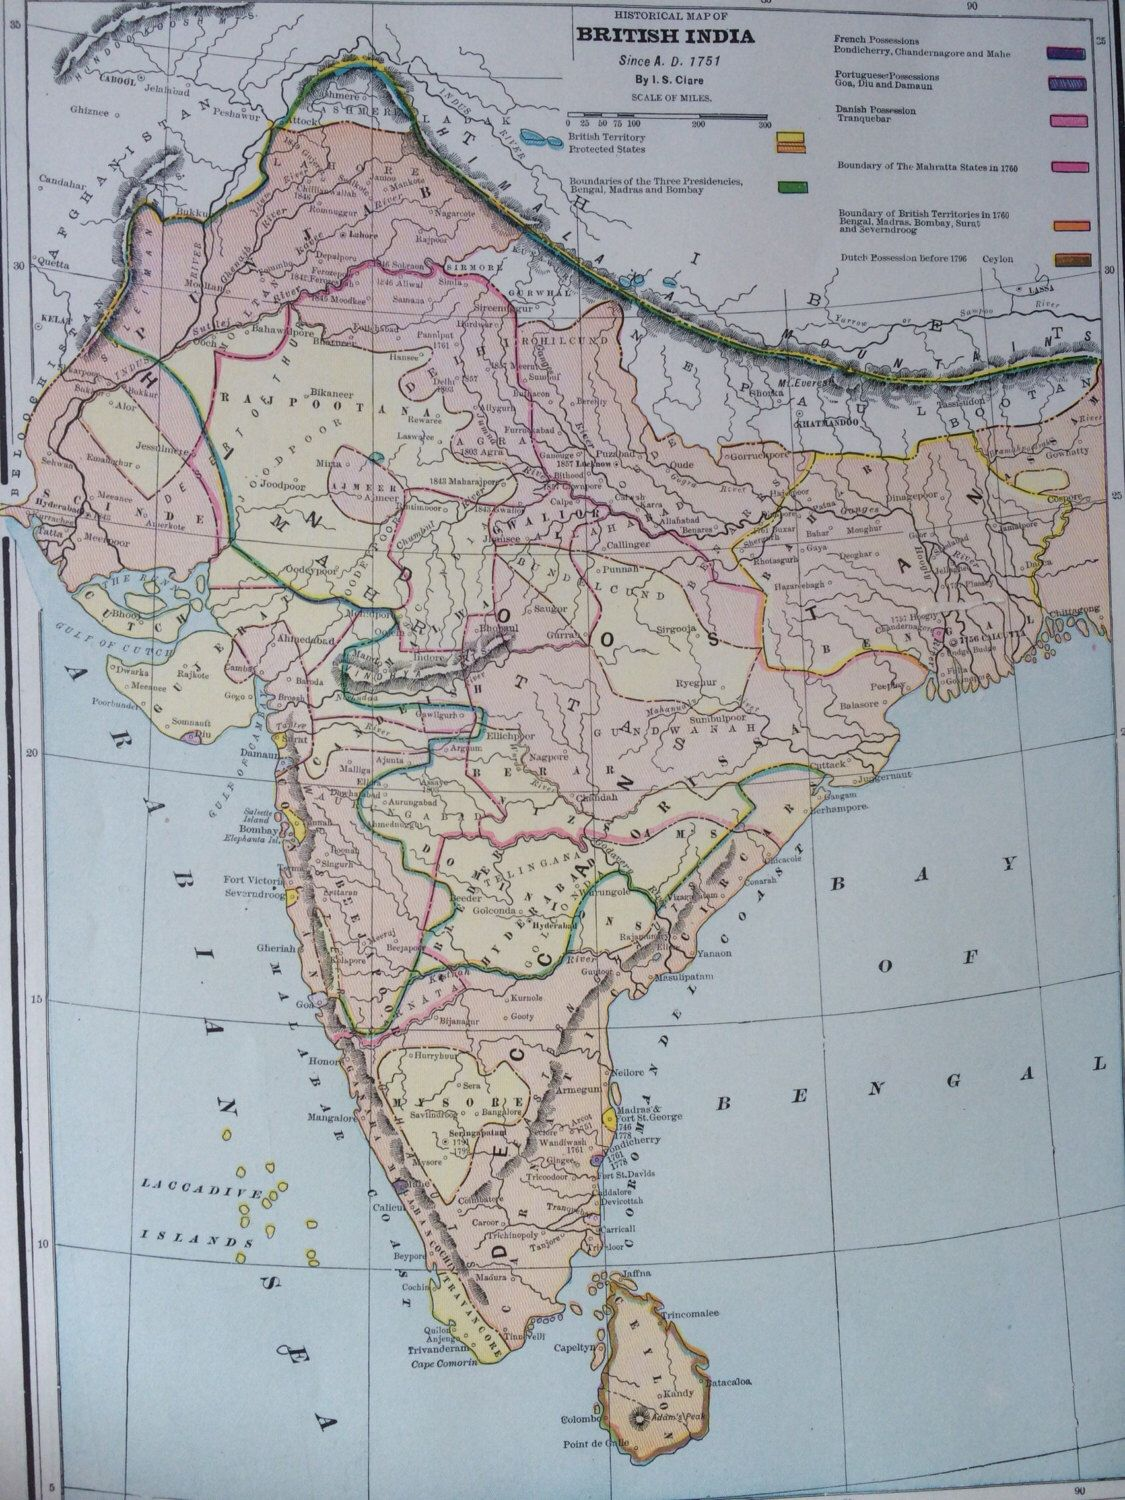 1936 historical british india since 1751 original vintage map 115 x 1936 historical british india since 1751 original vintage map 115 x 145 inches home decor gumiabroncs Image collections